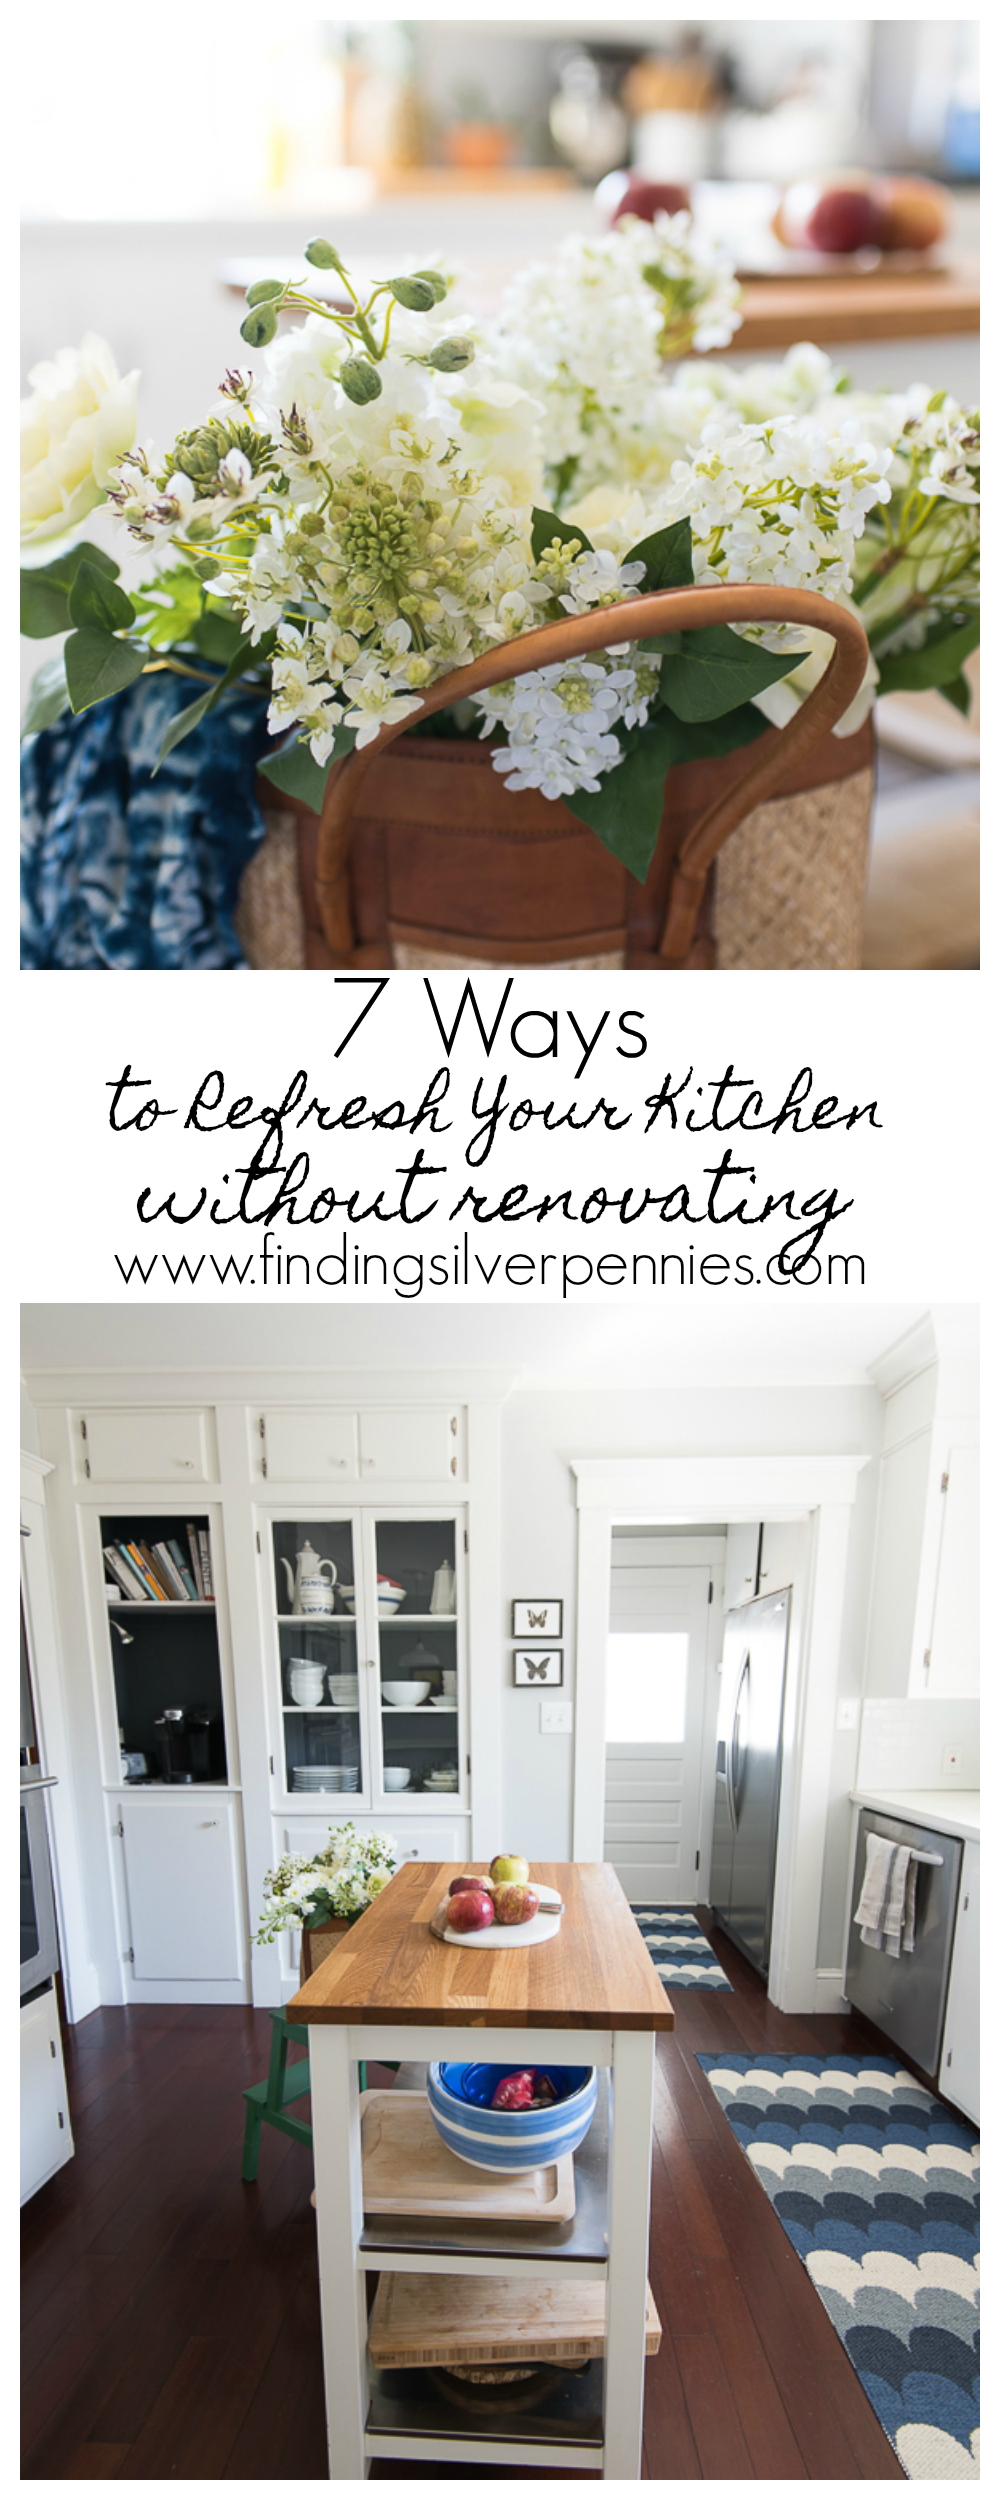 7 Ways to Refresh Your Kitchen Without Renovating - Finding Silver Pennies